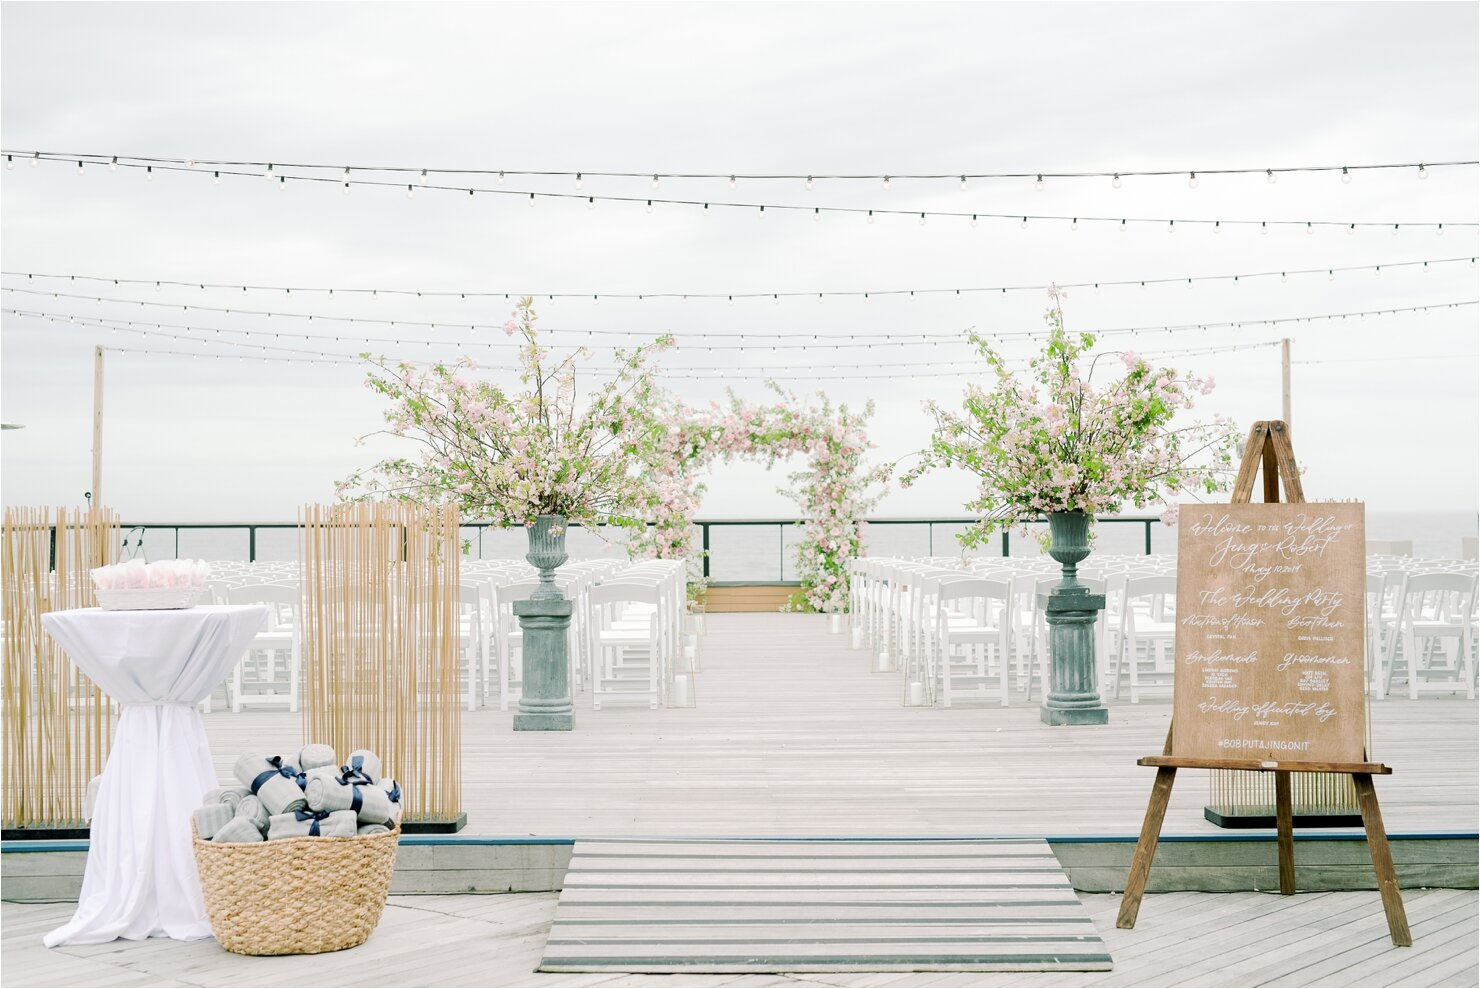 Forward Deck Outside Wedding Ceremony at Gurney's Montauk